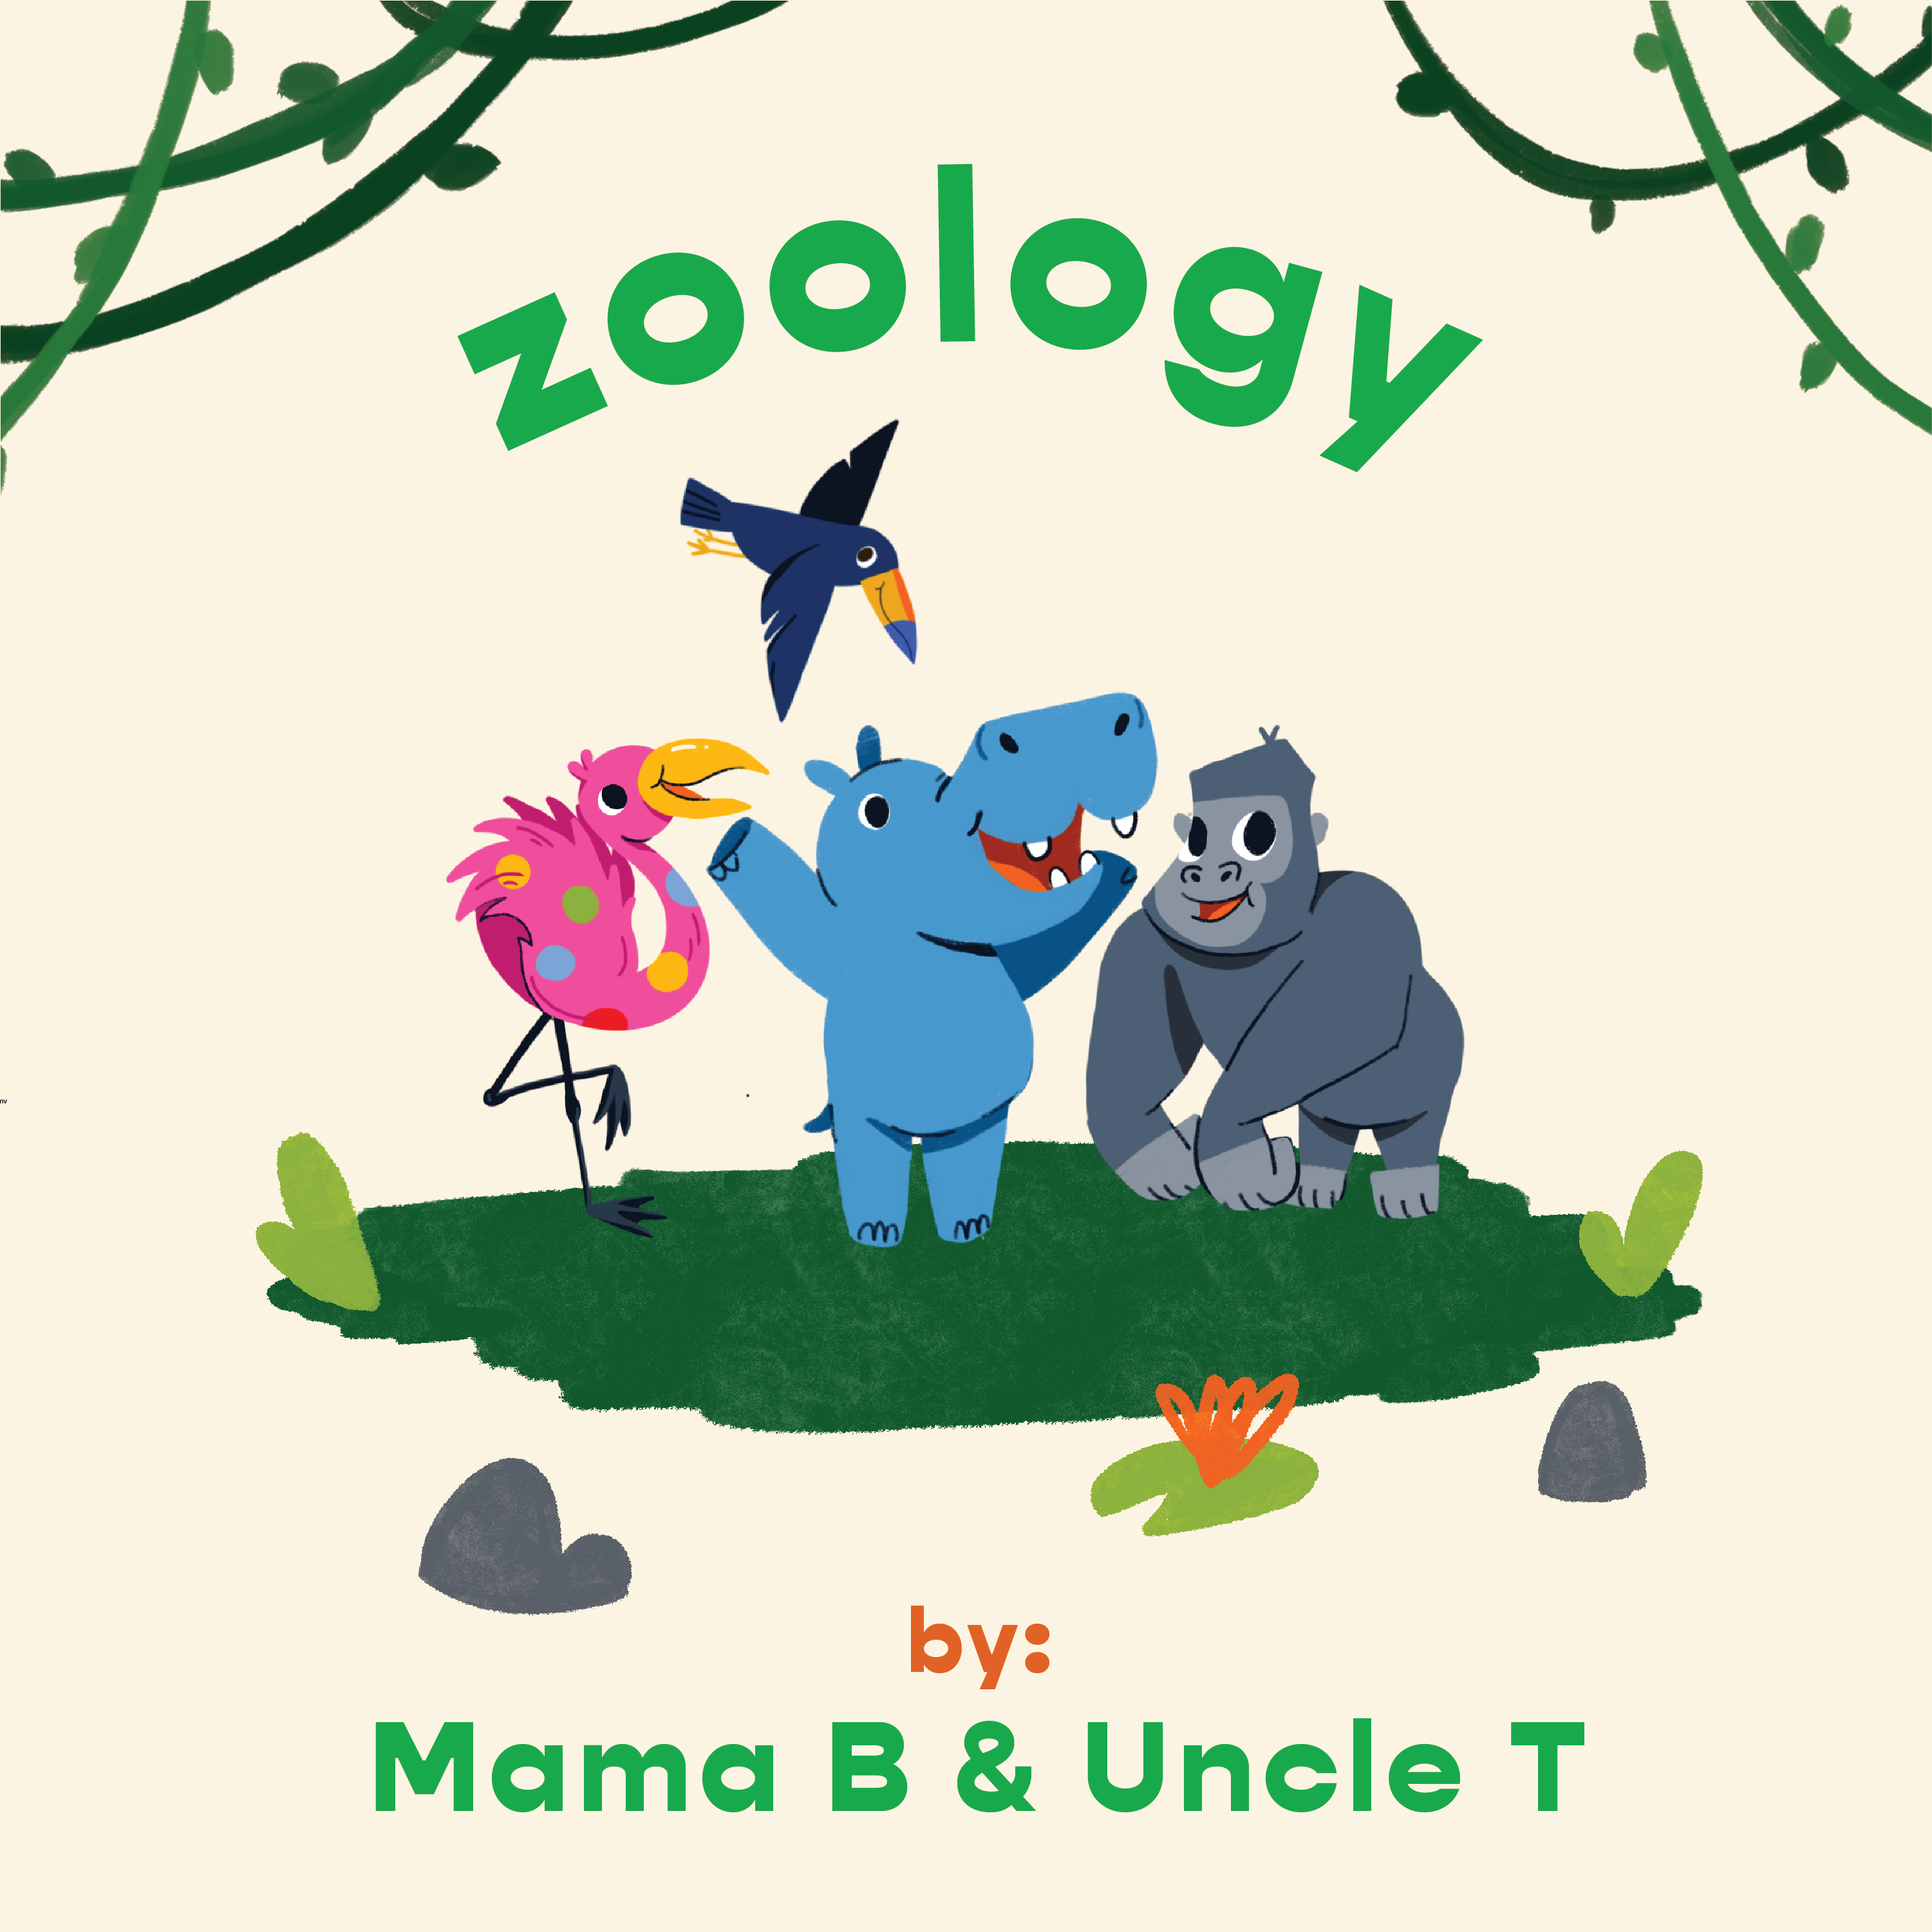 Zoology by Mama B & Uncle T